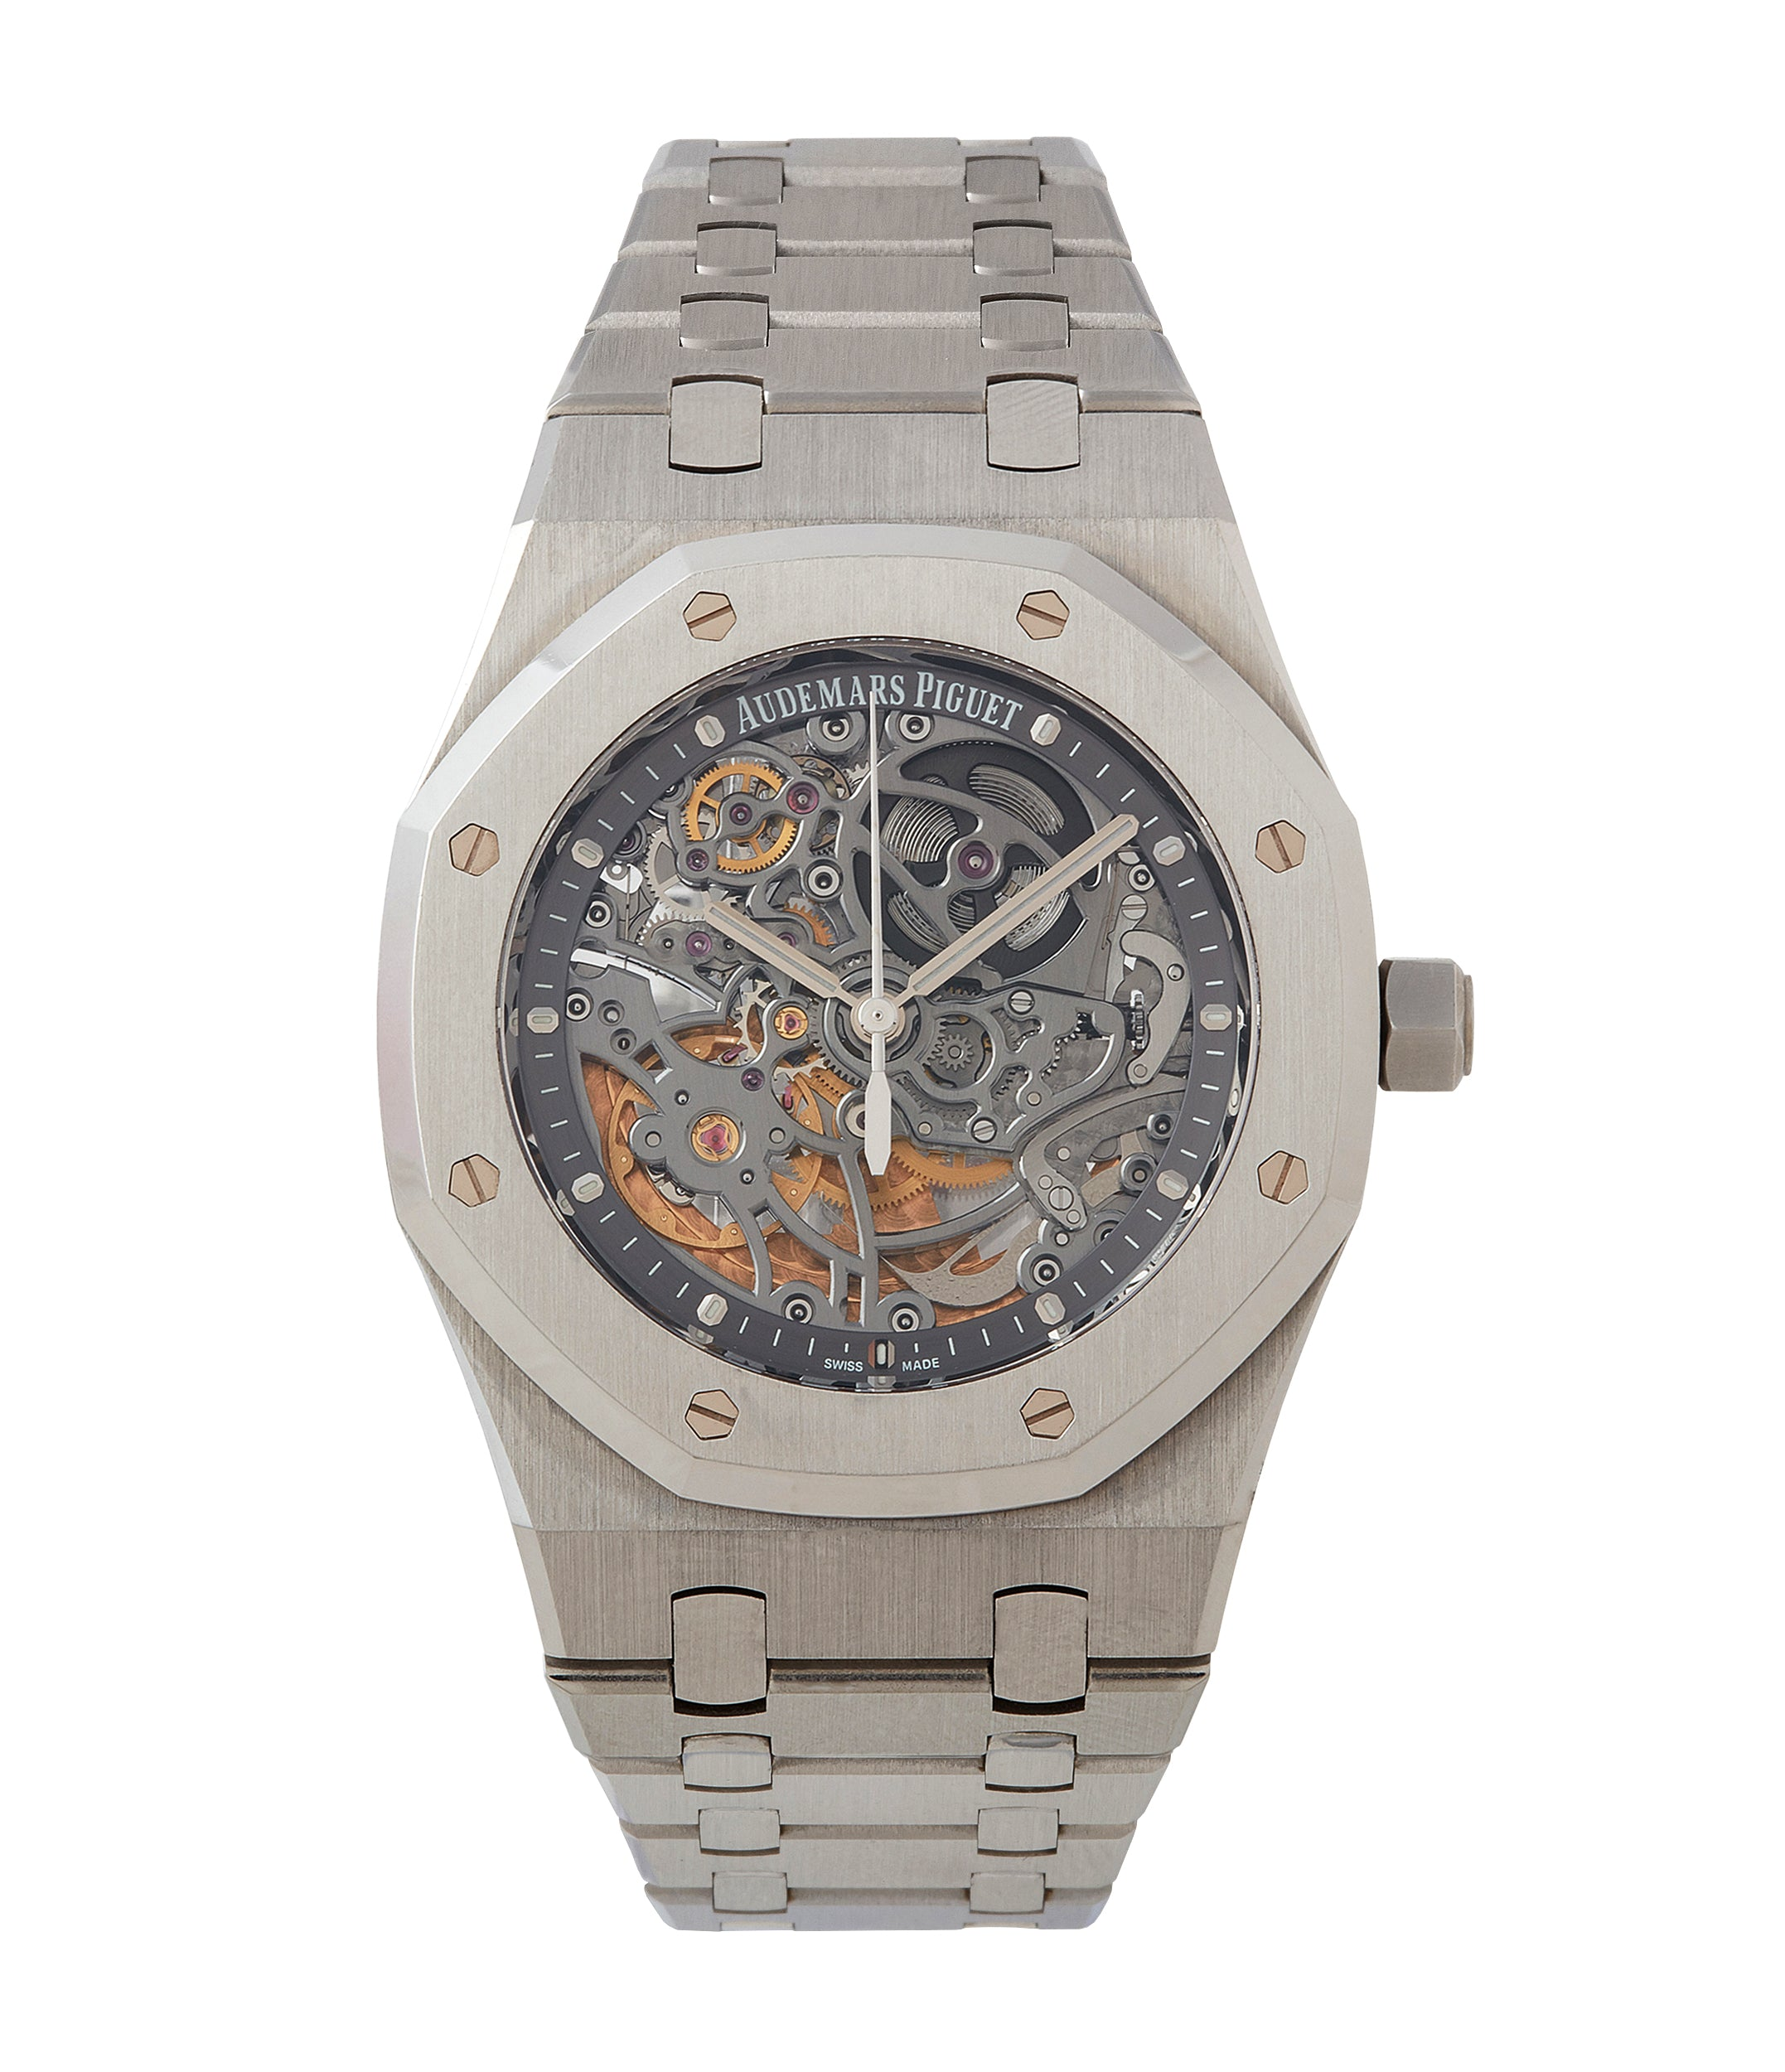 buy Audemars Piguet Royal Oak skeletonised 15305ST steel watch for sale online at A Collected Man London UK specialist of rare watches